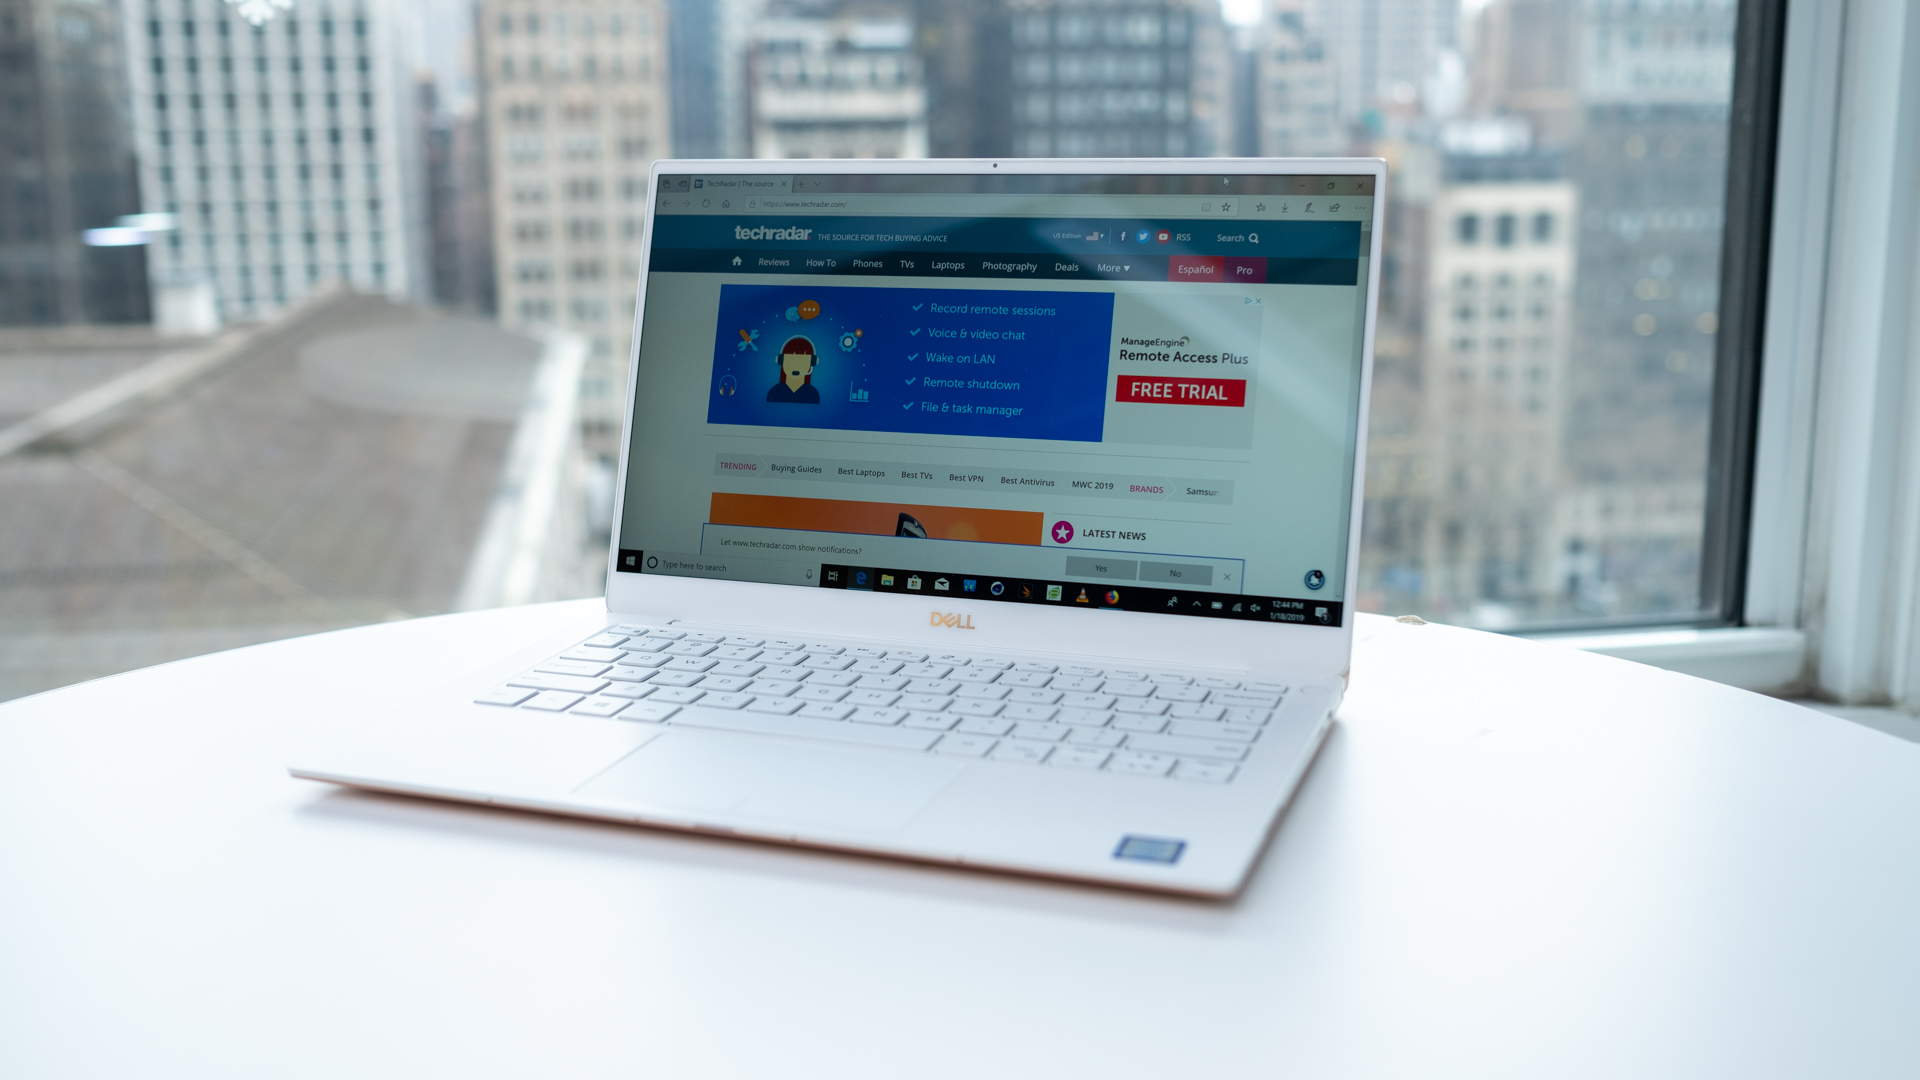 Best Laptop for Doing Photography